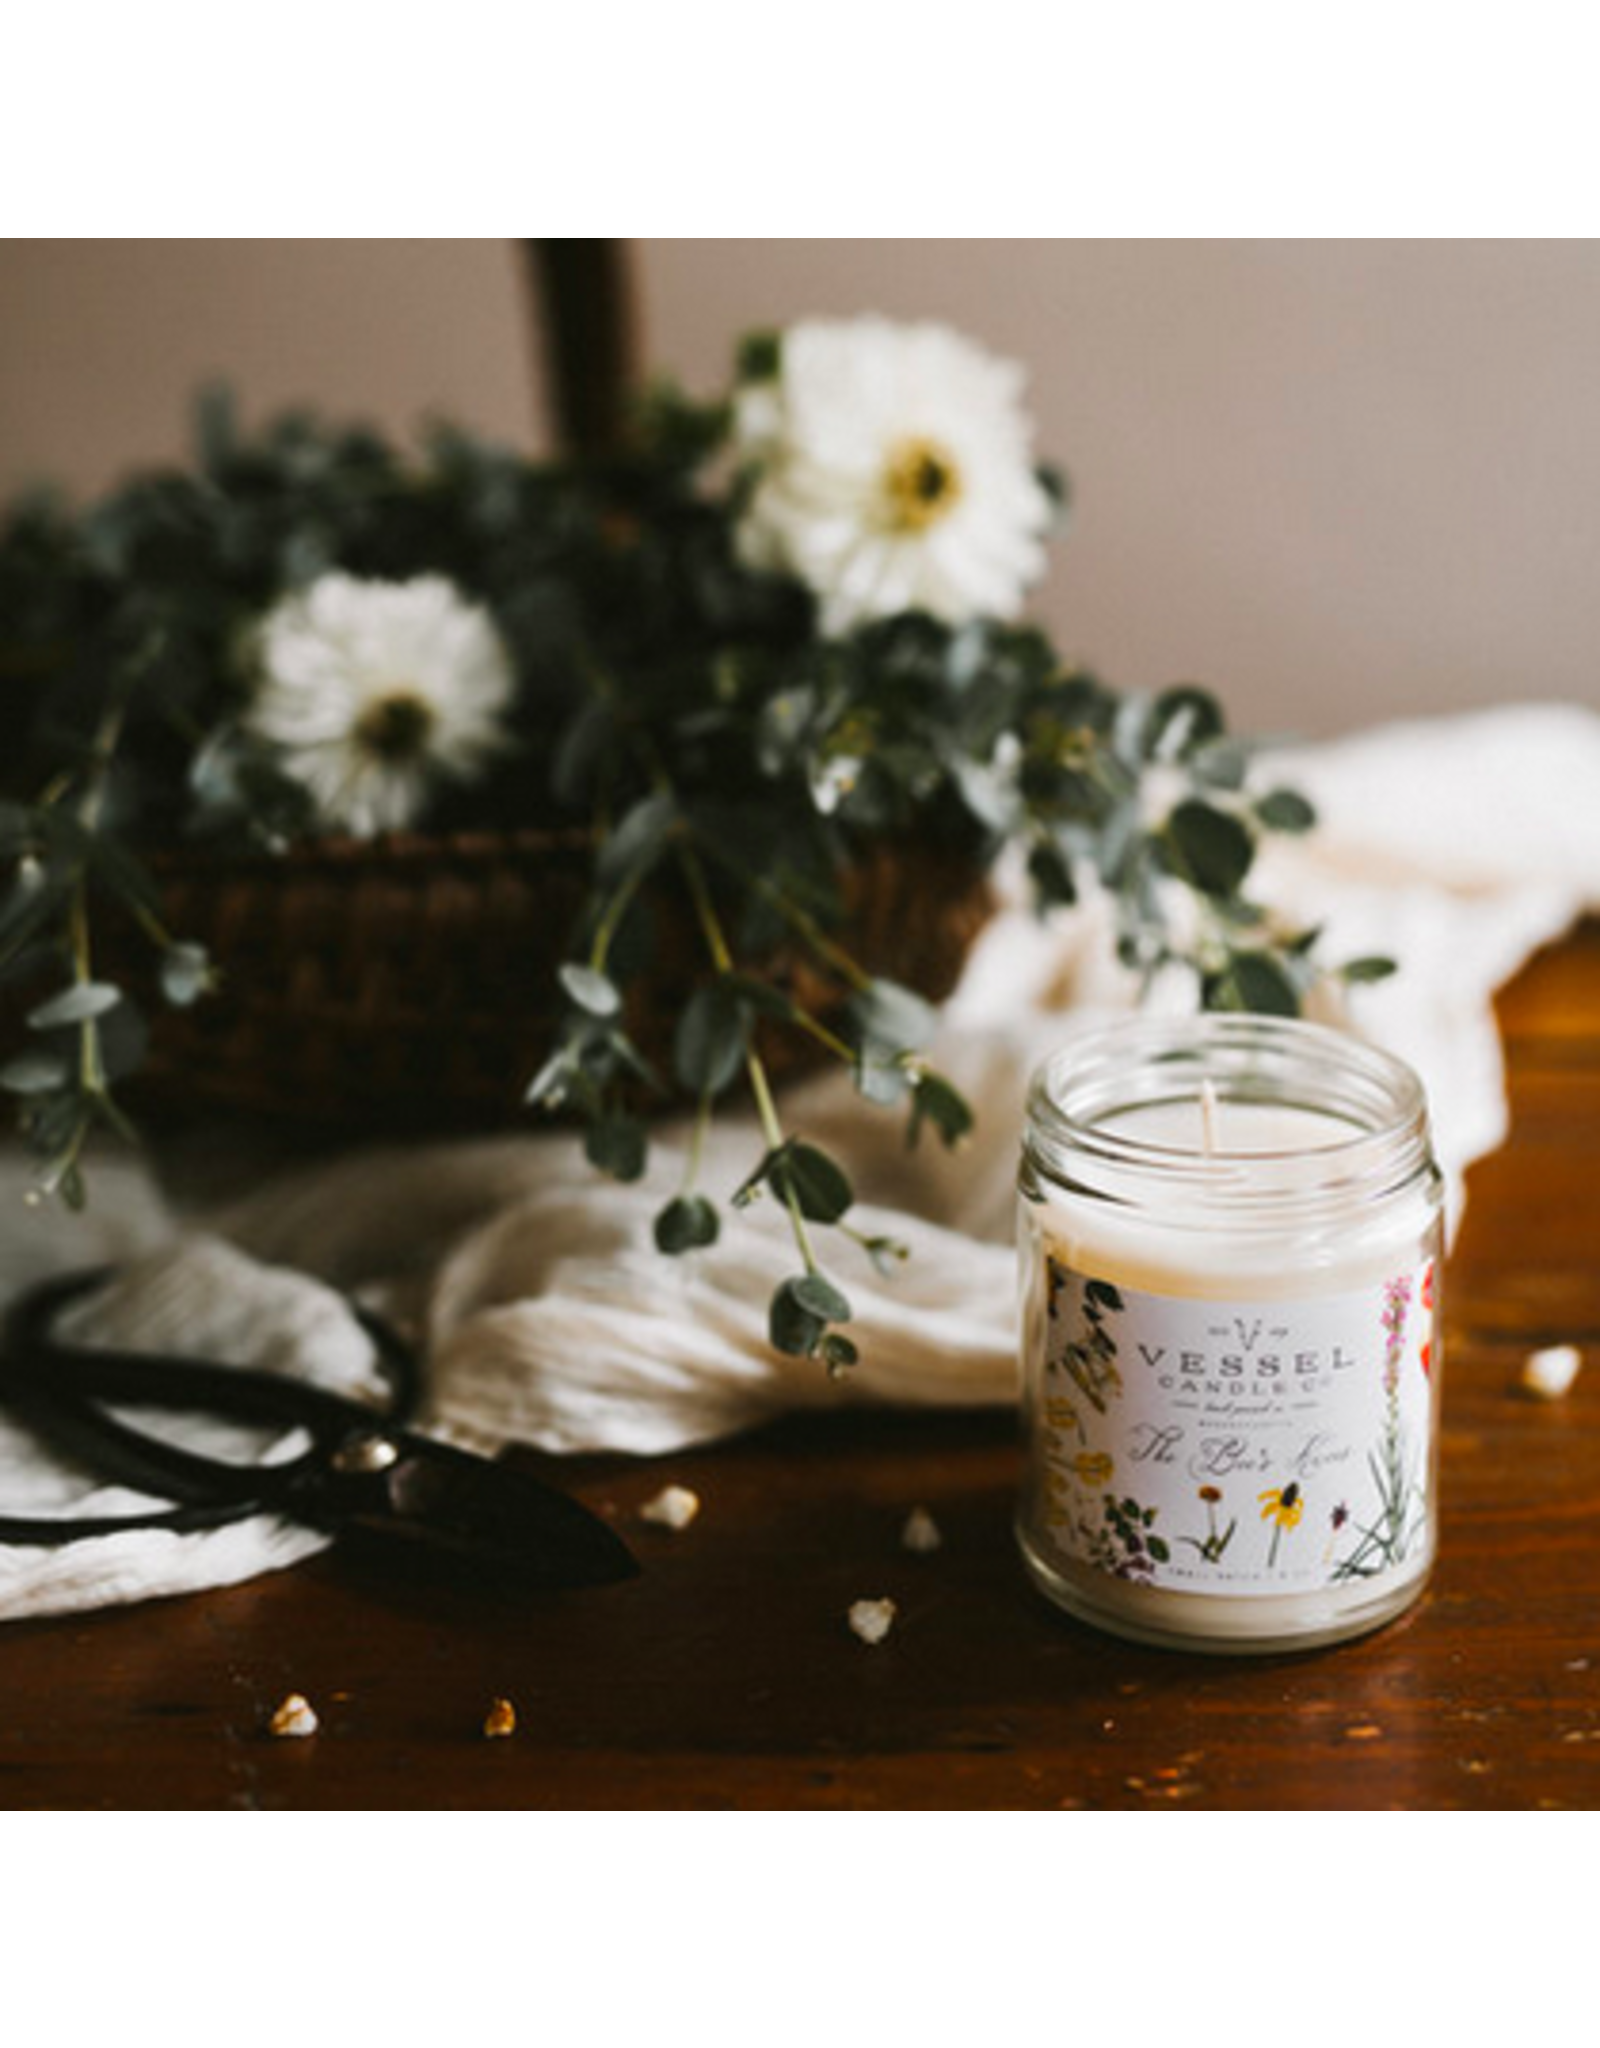 Vessel Candle Co The Bee's Knees Candle by Vessel Candle Co